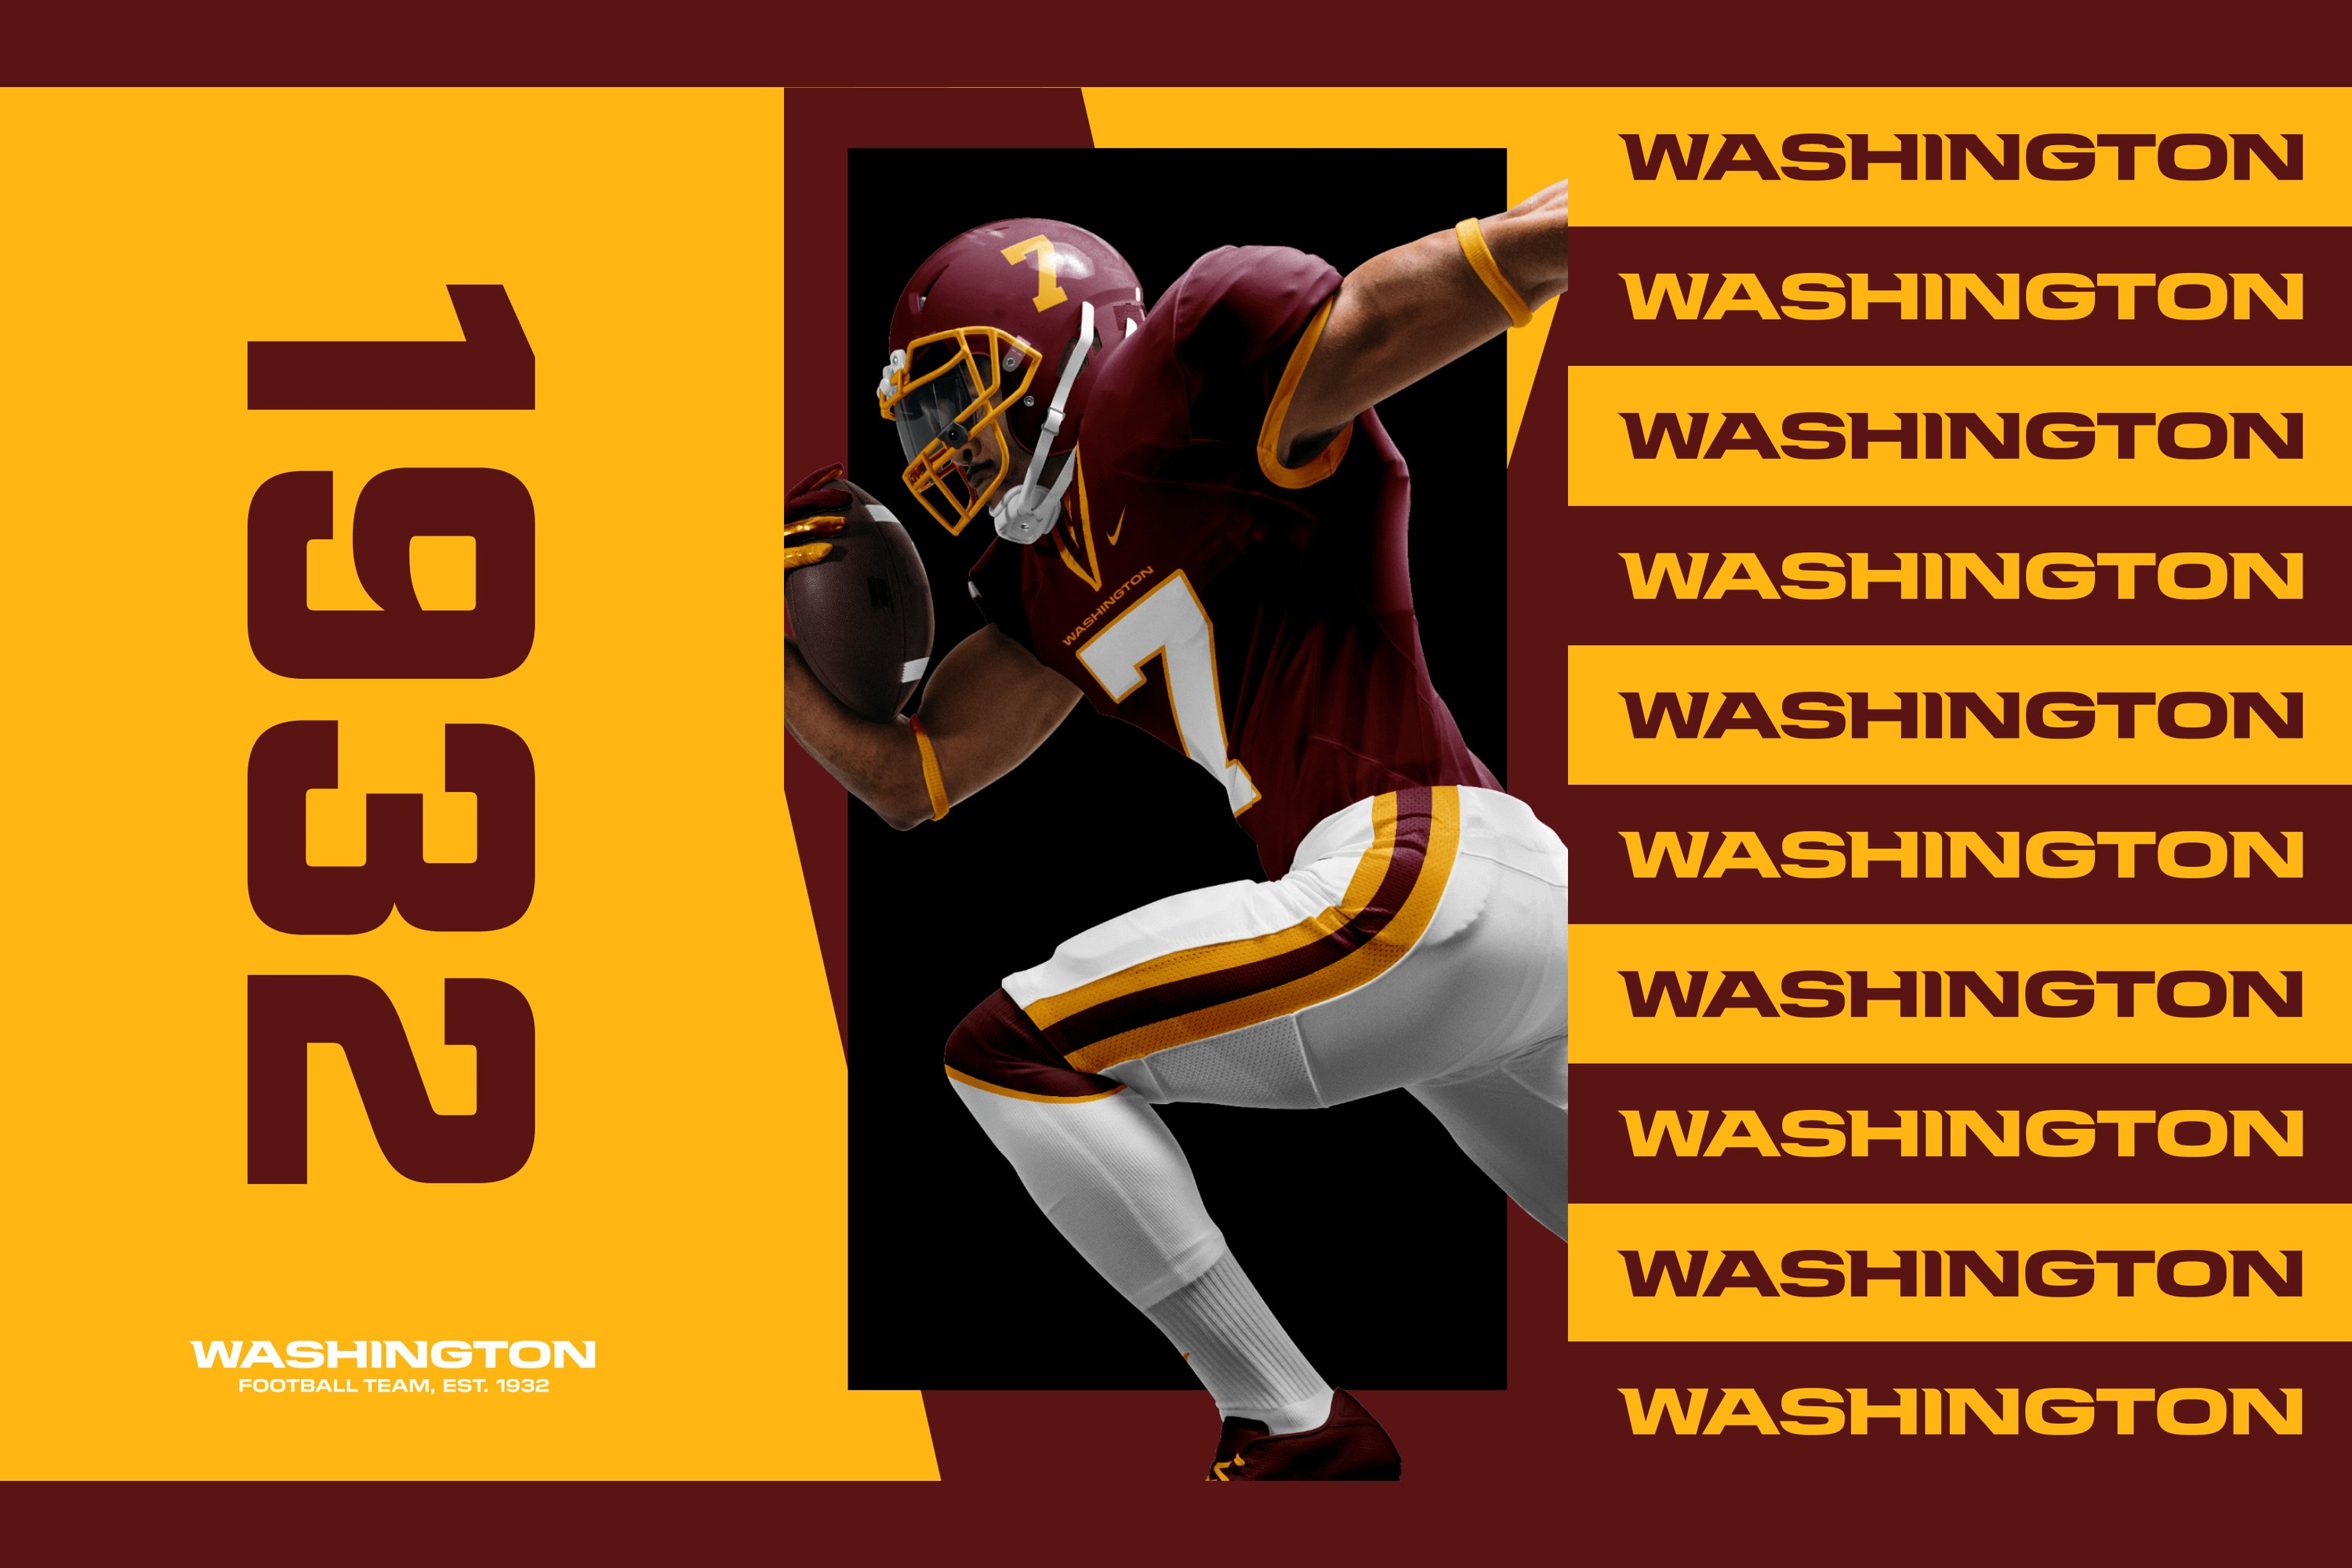 Have ideas for the Washington Redskins' new name? The teams says it wants input